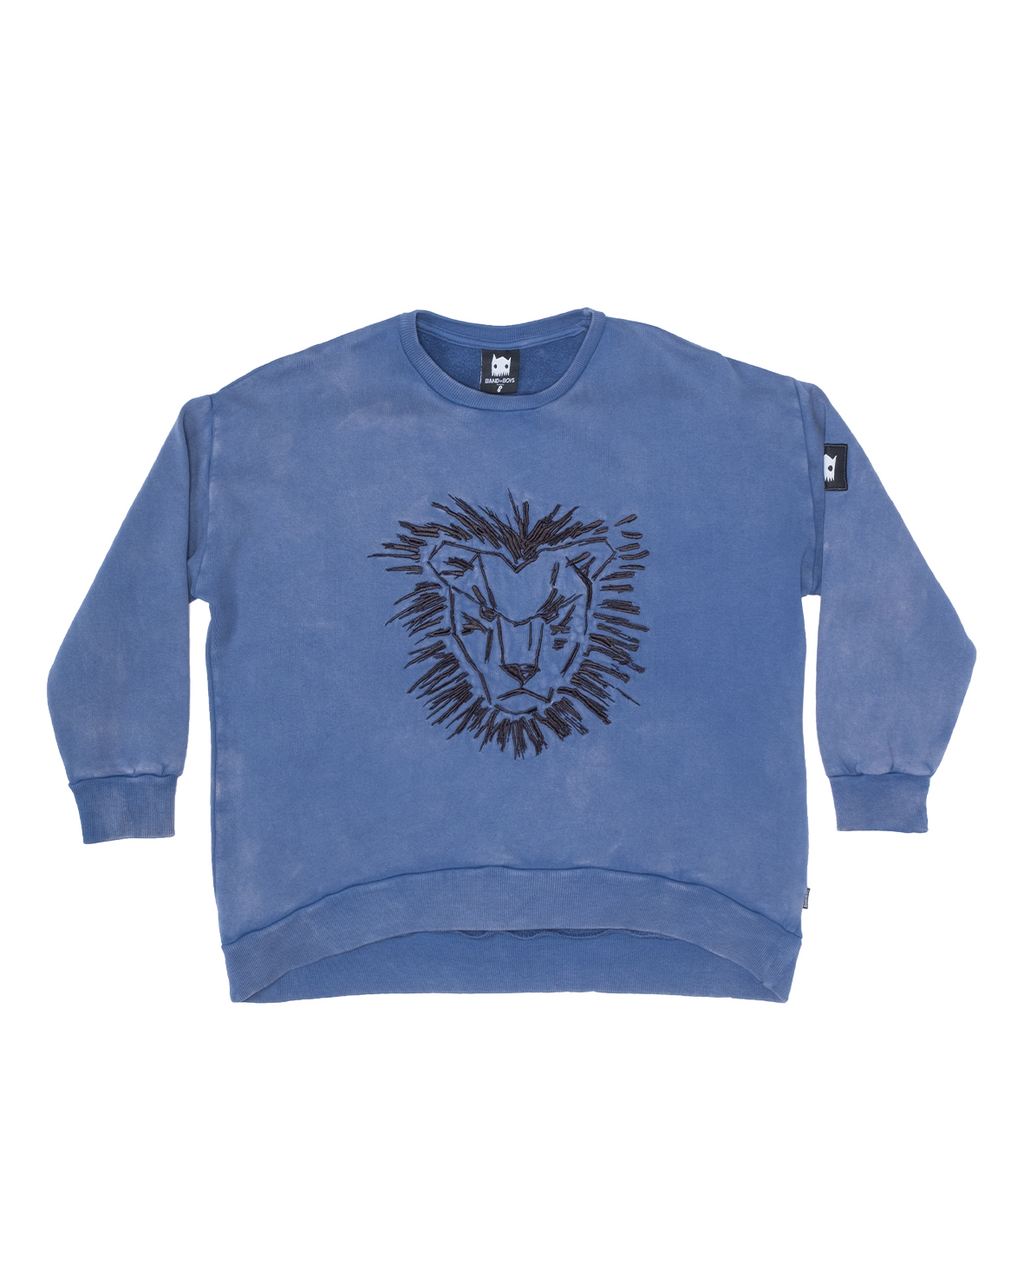 Band of Boys - Lion Mane Oversized Crew - Vintage Blue